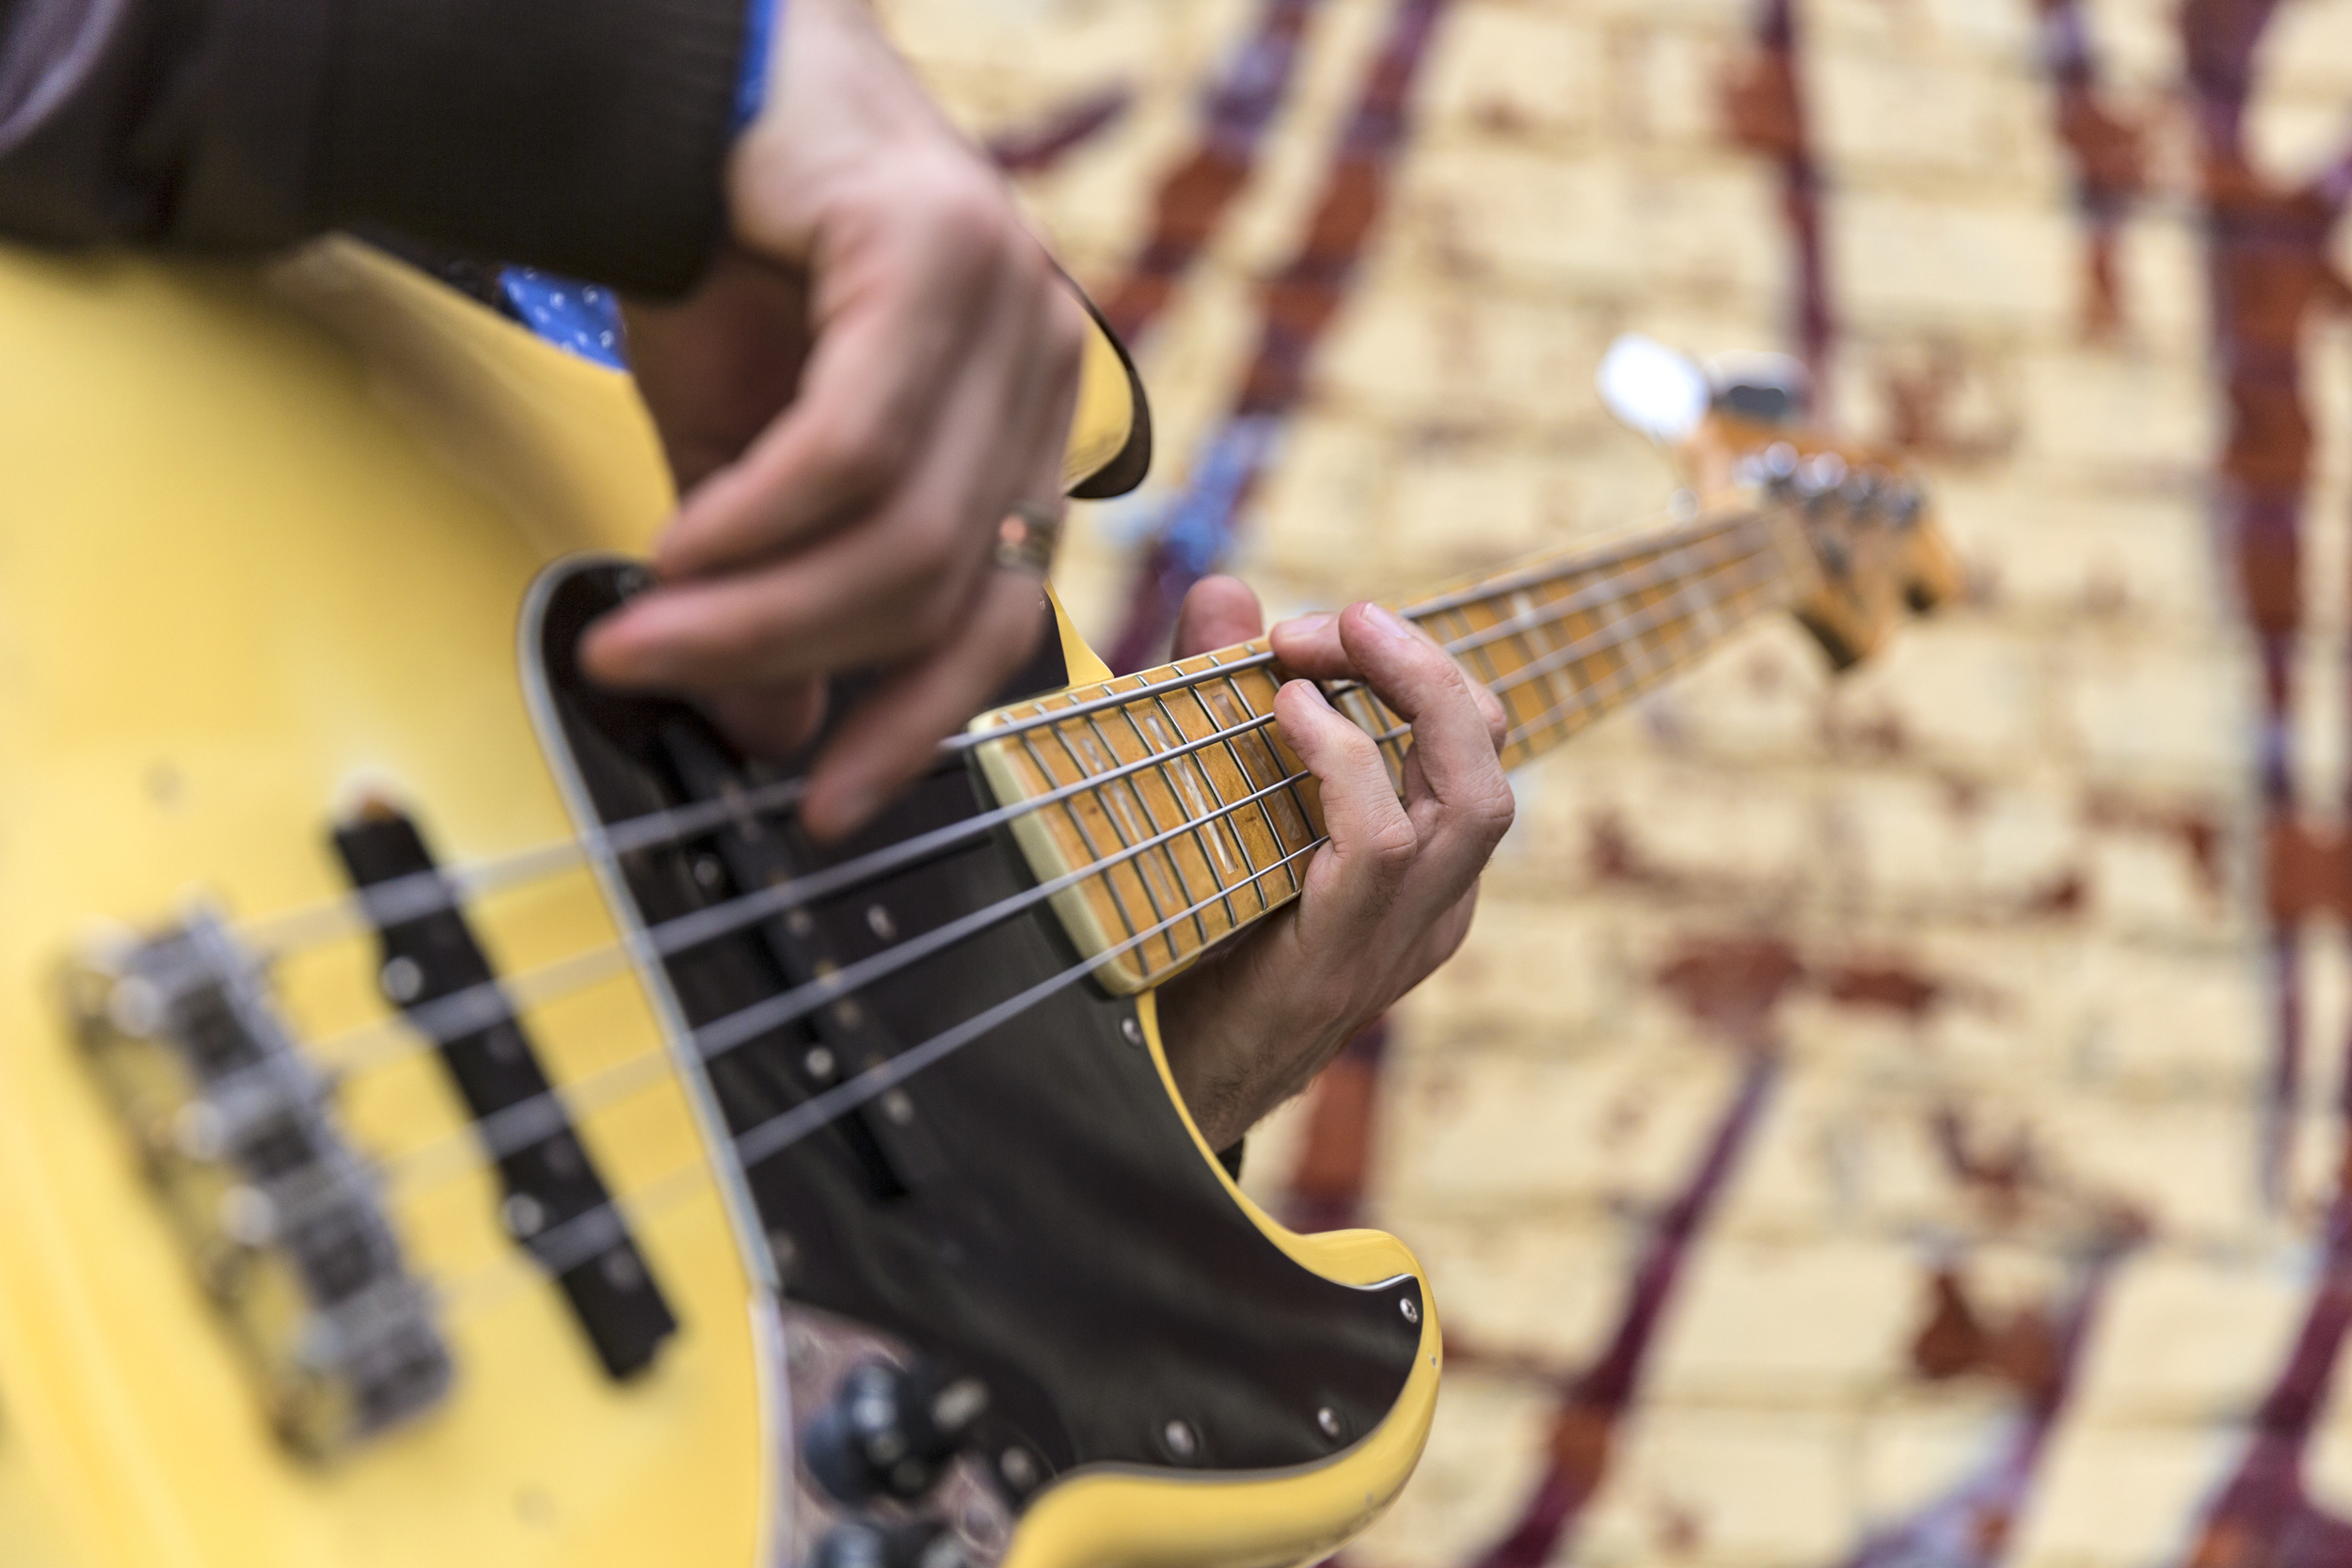 Seth Barden playing his 1979 Fender Jazz bass.